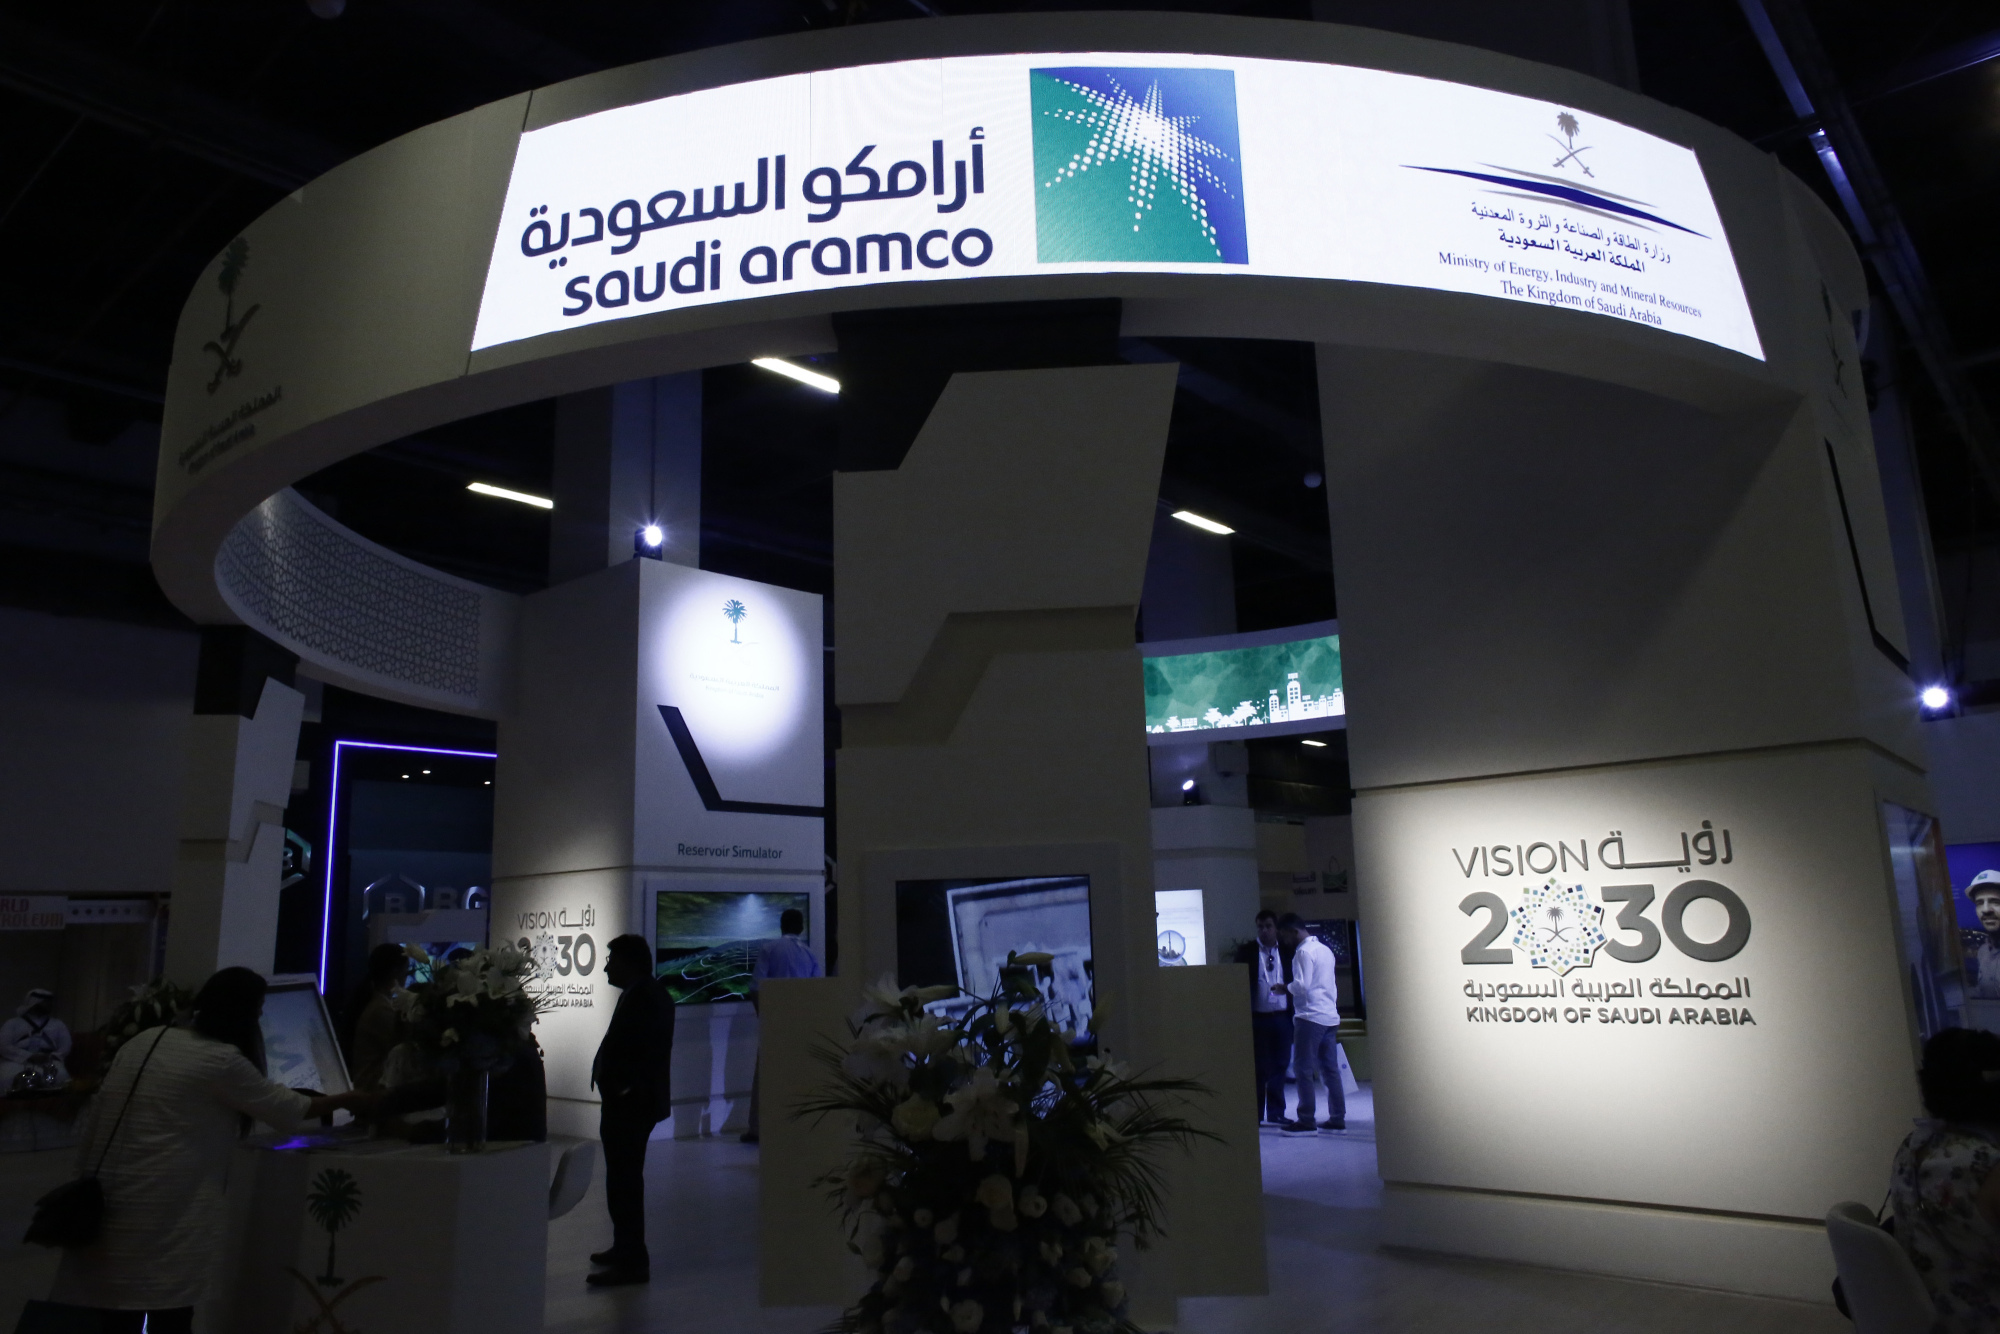 Ipo aramco can jeopardy